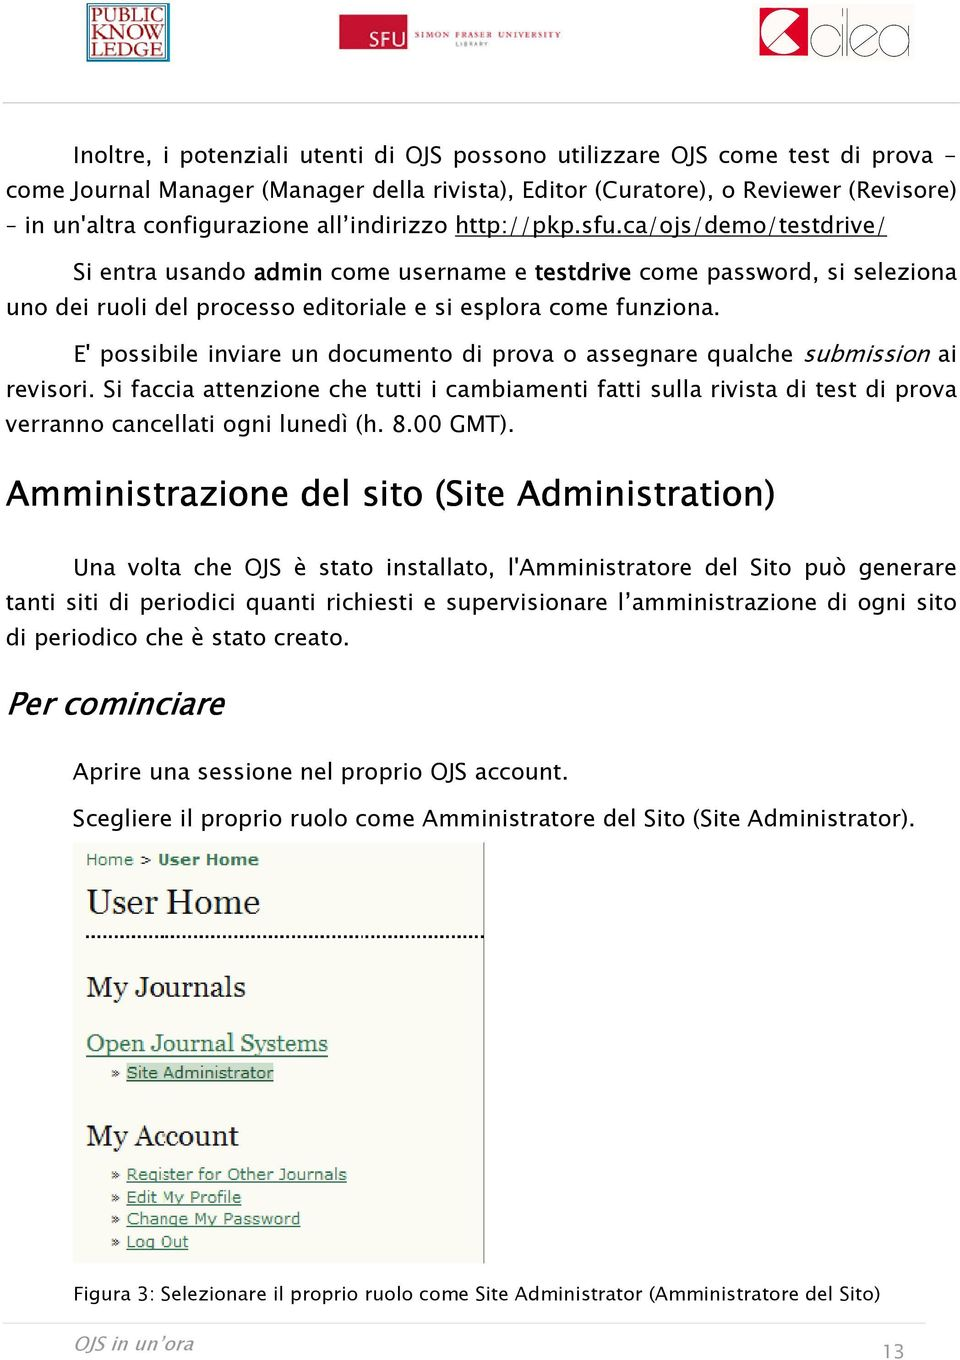 E' possibile inviare un documento di prova o assegnare qualche submission ai revisori.